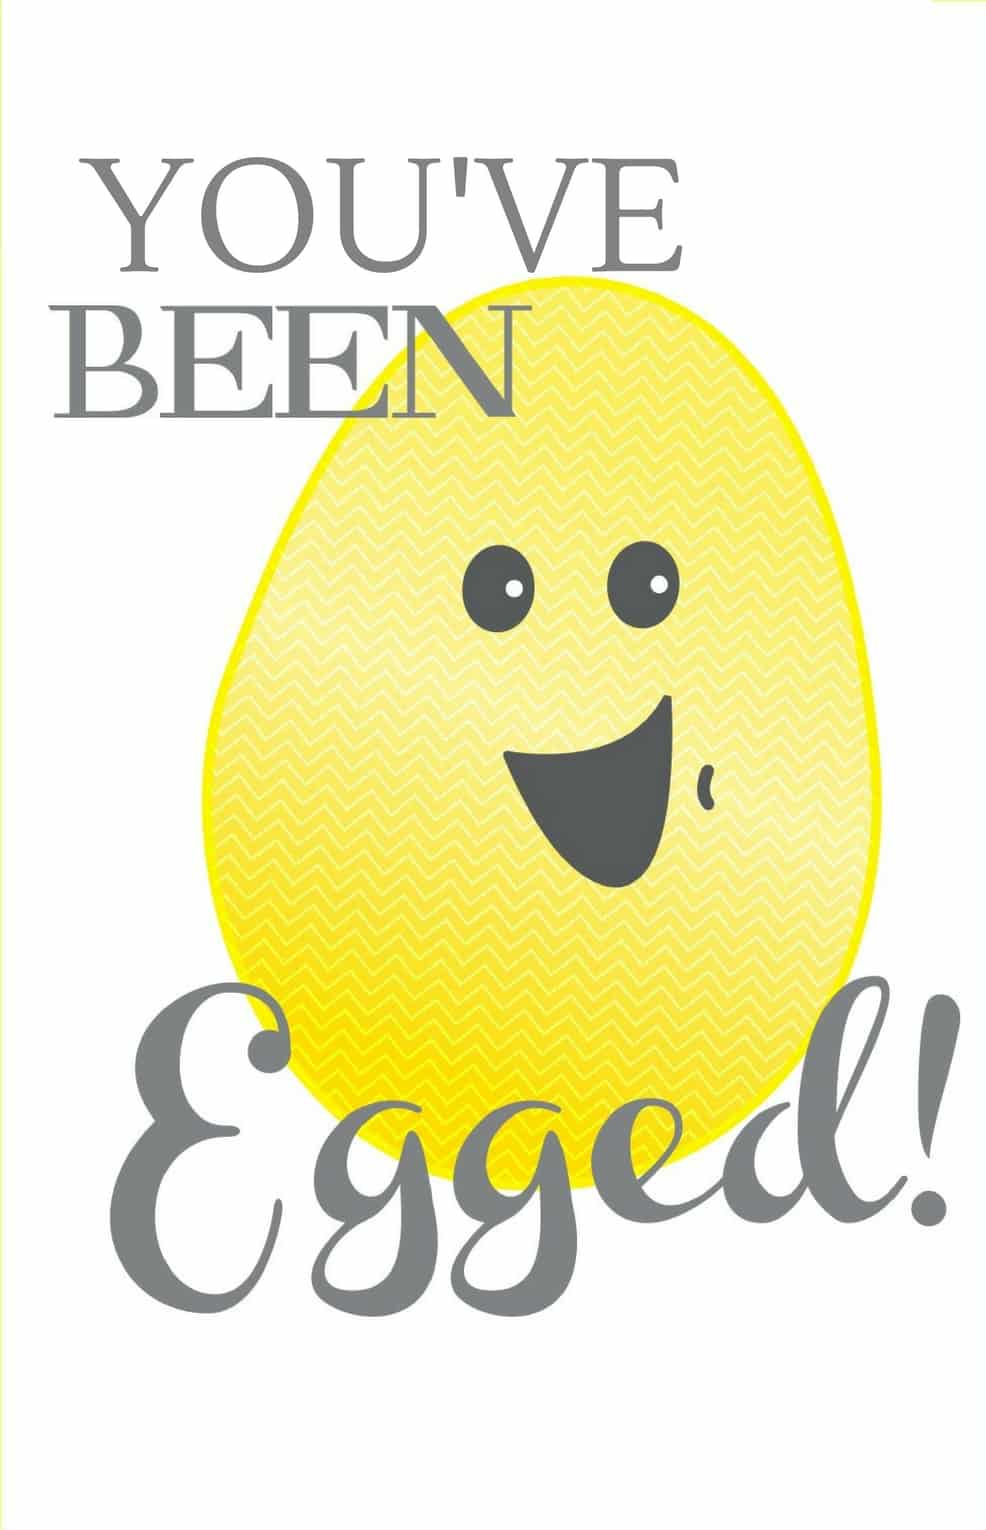 You've Been Egged Easter Printable